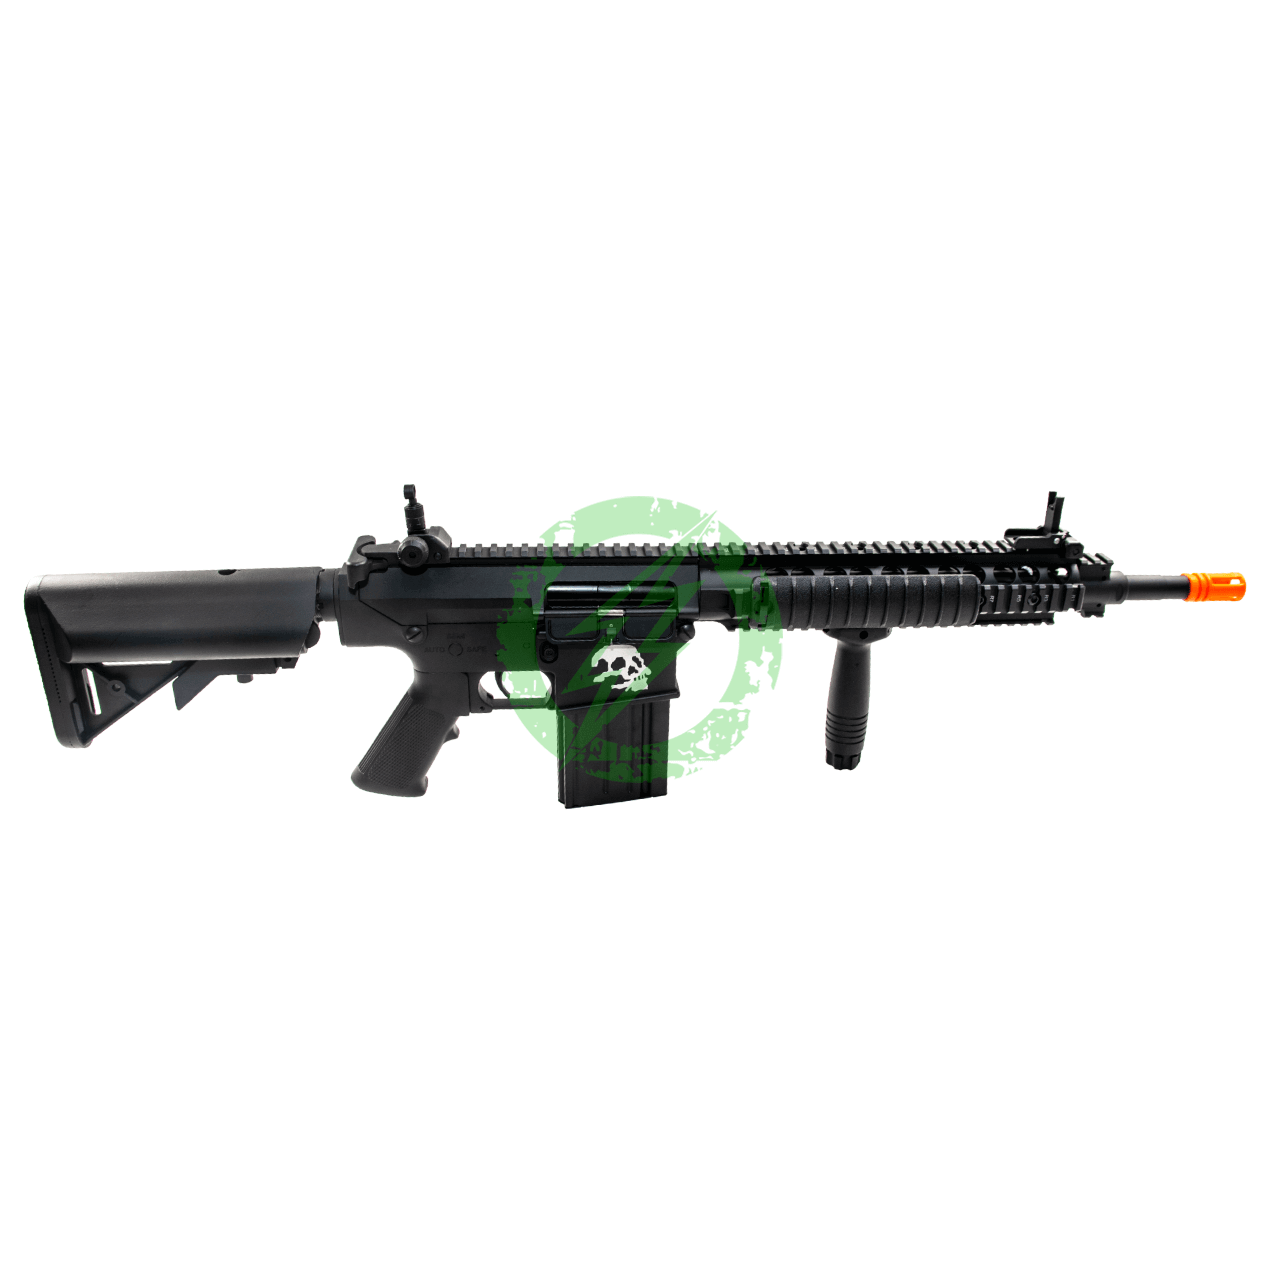 A&K Full Metal SR-25 Airsoft AEG Rifle | Zombie Killer Edition right